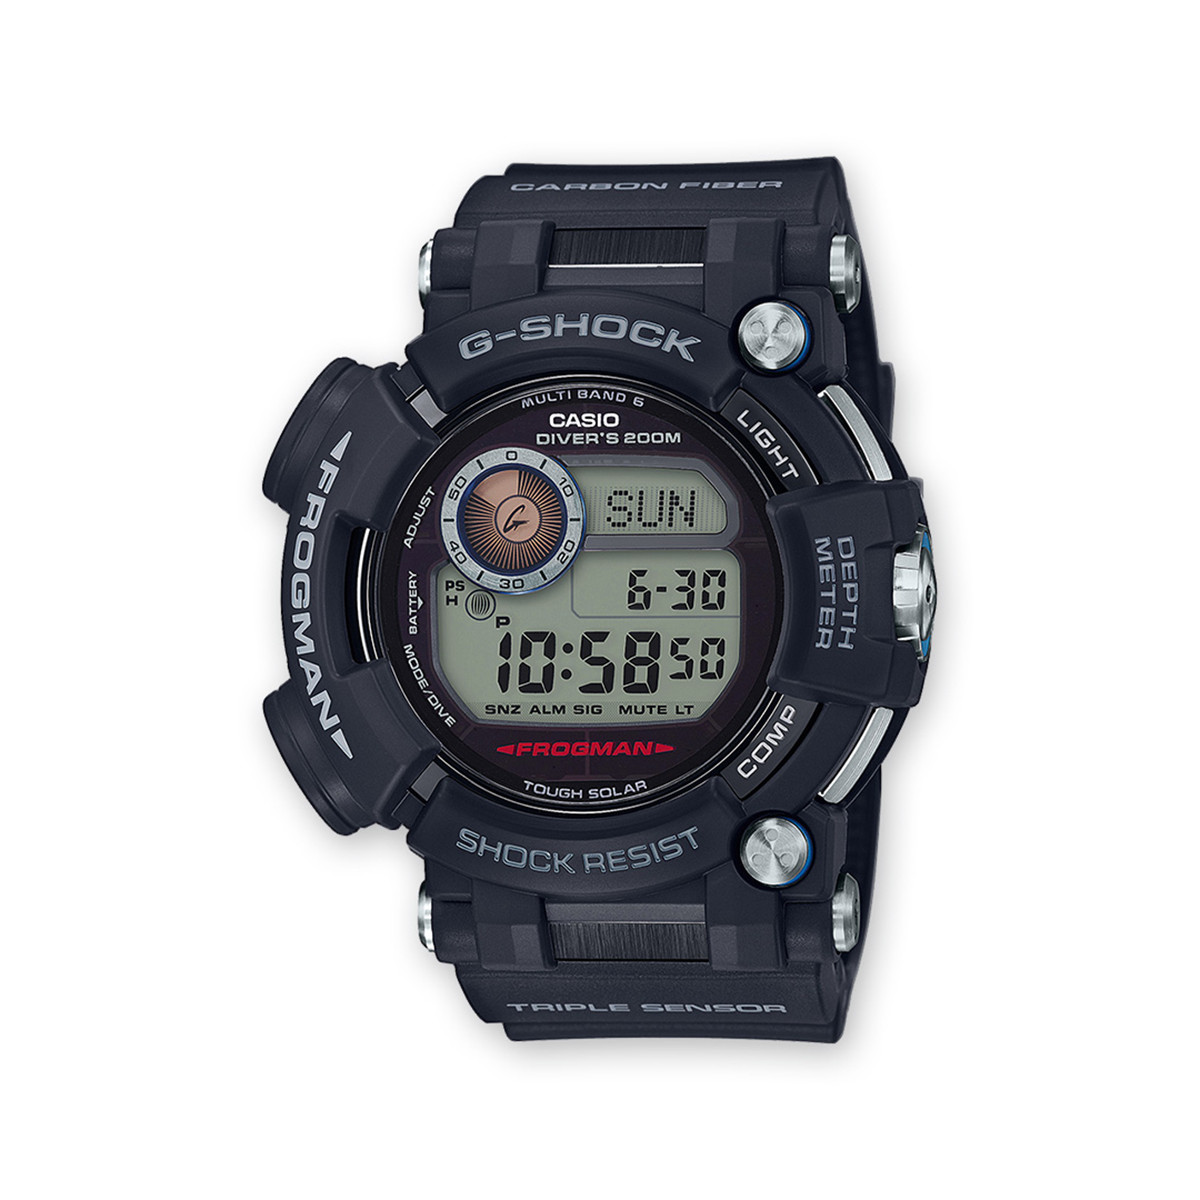 Montre CASIO G-SHOCK -GWF-D1000-1ER